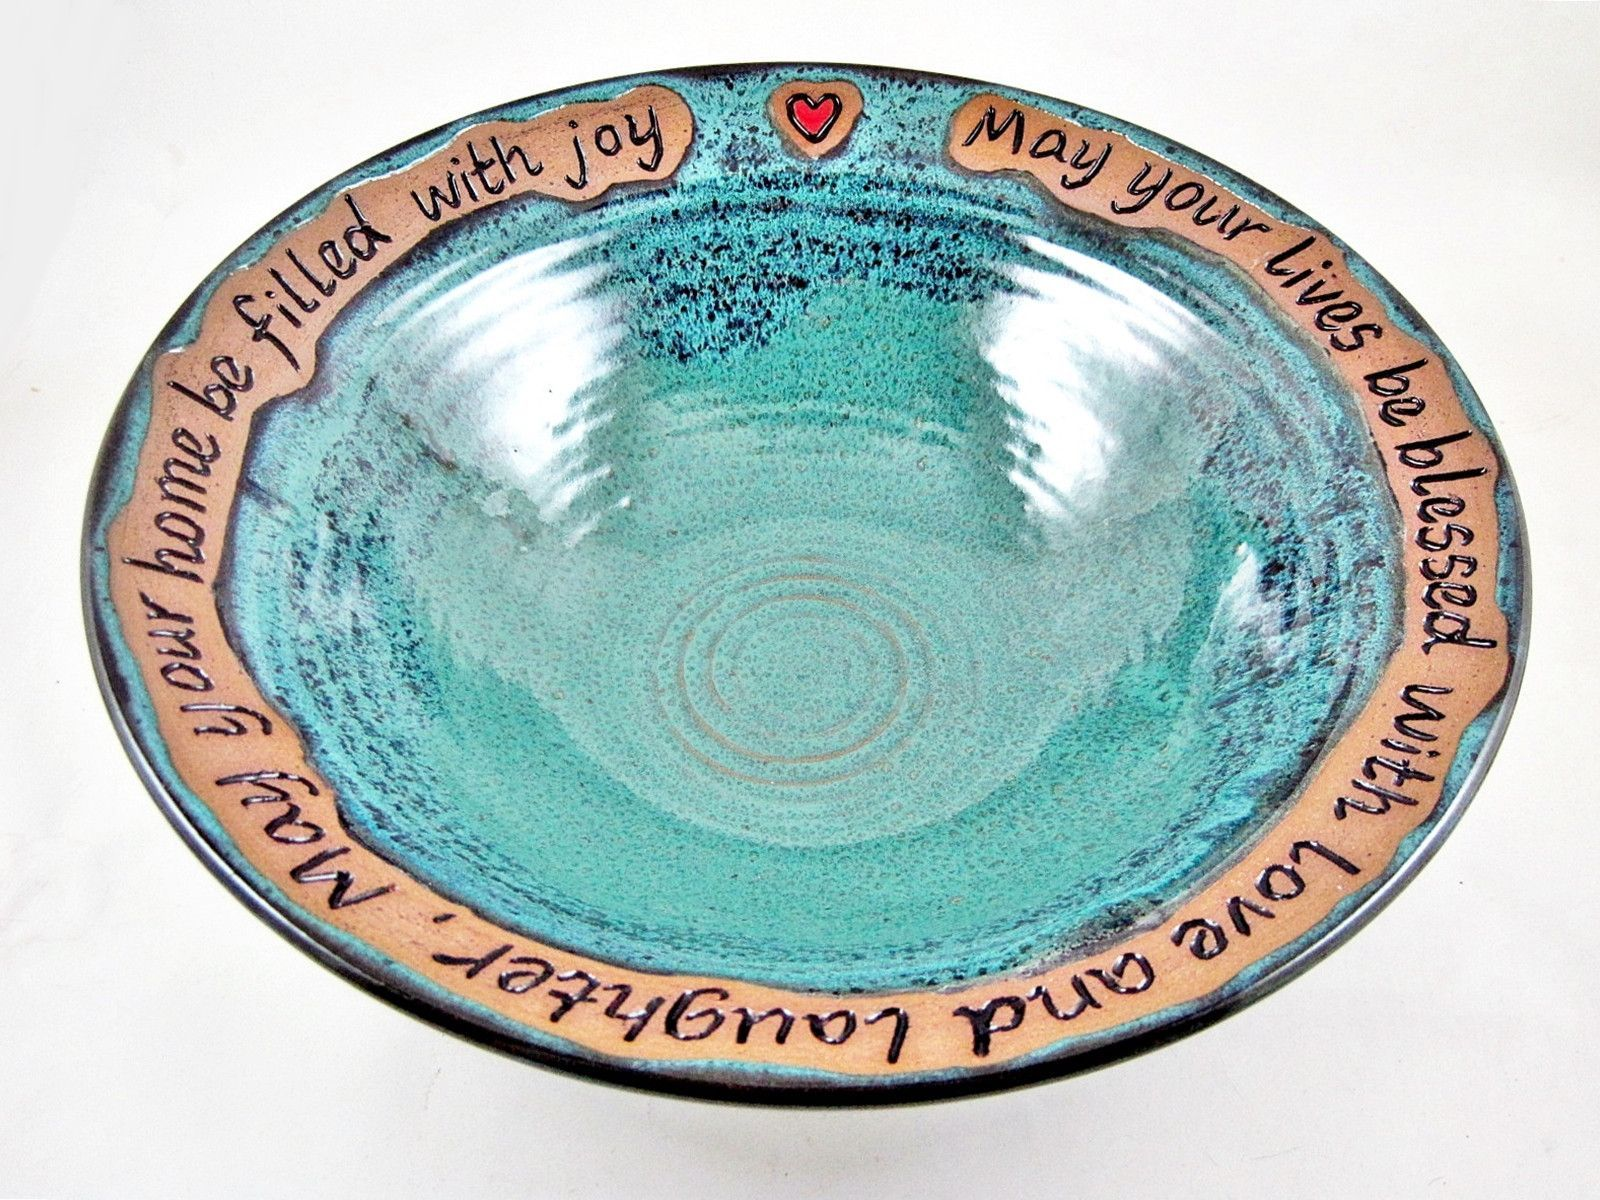 Wedding Blessing Bowl Pottery Wedding Bowl In Stock 214 Wb